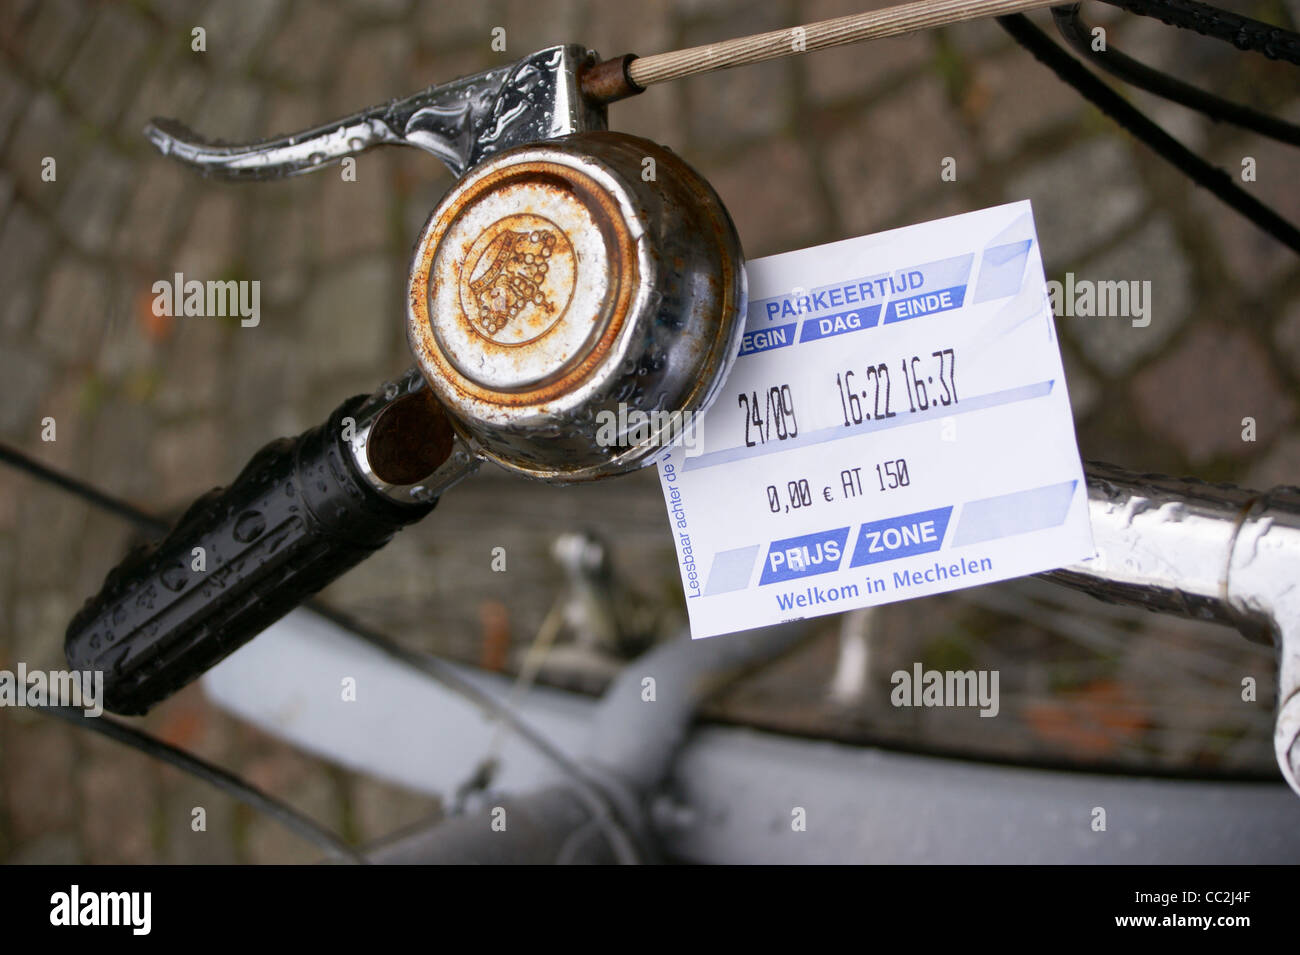 a-parking-ticket-on-a-bicycle-mechelen-a